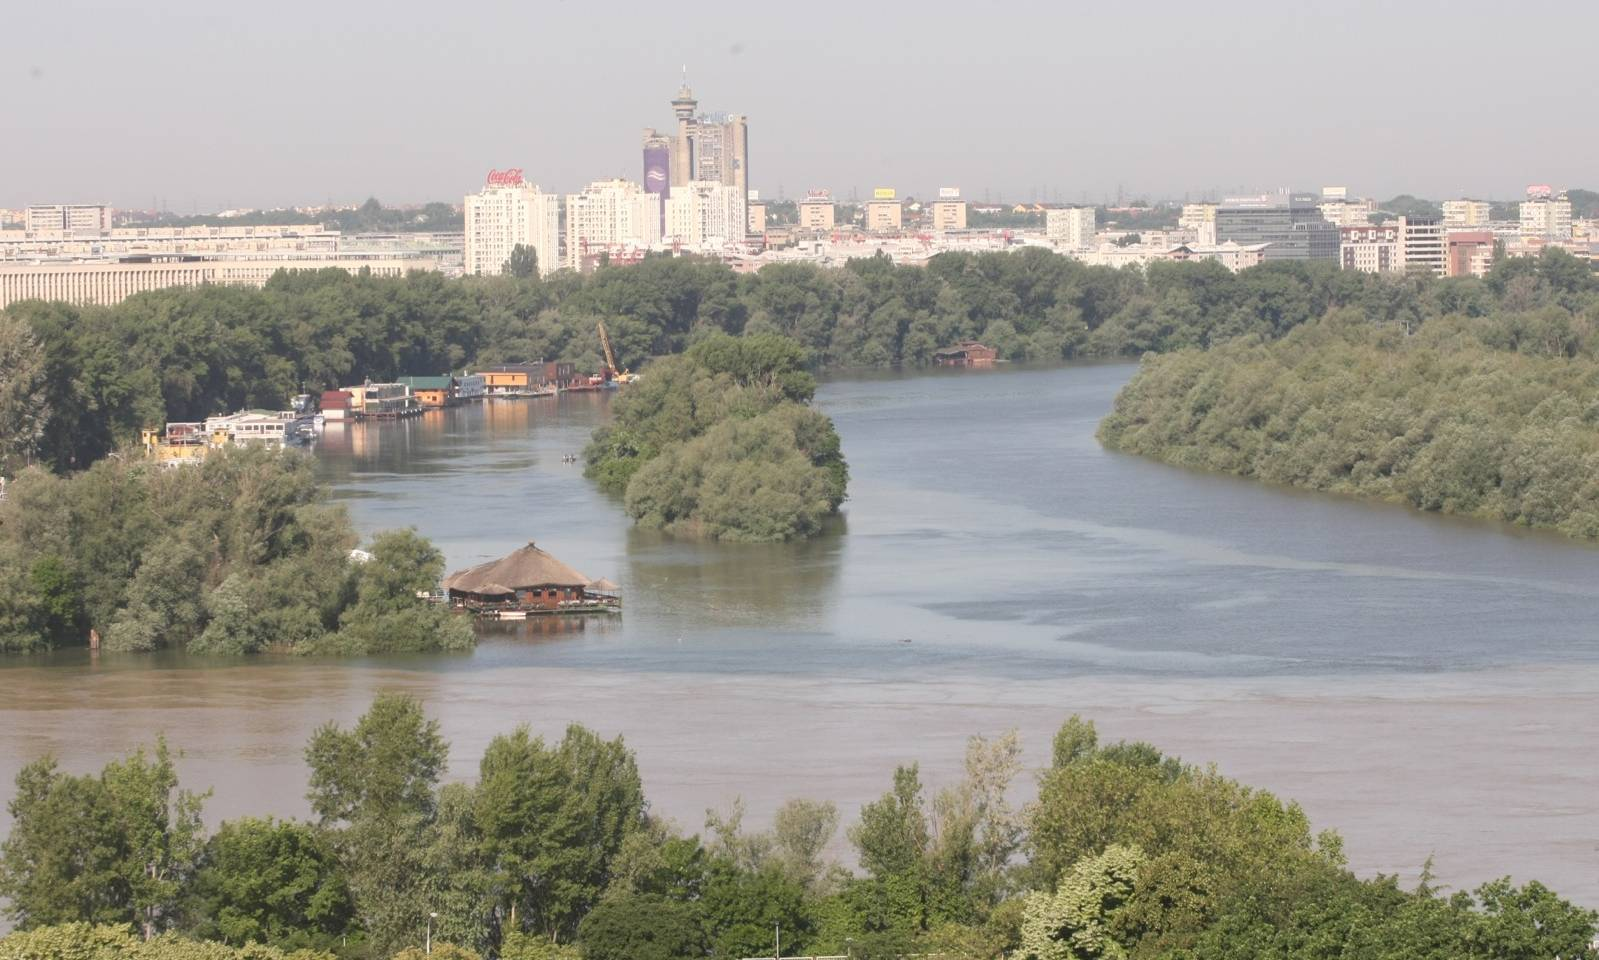 By the beautiful blue Danube, the Belgrade way